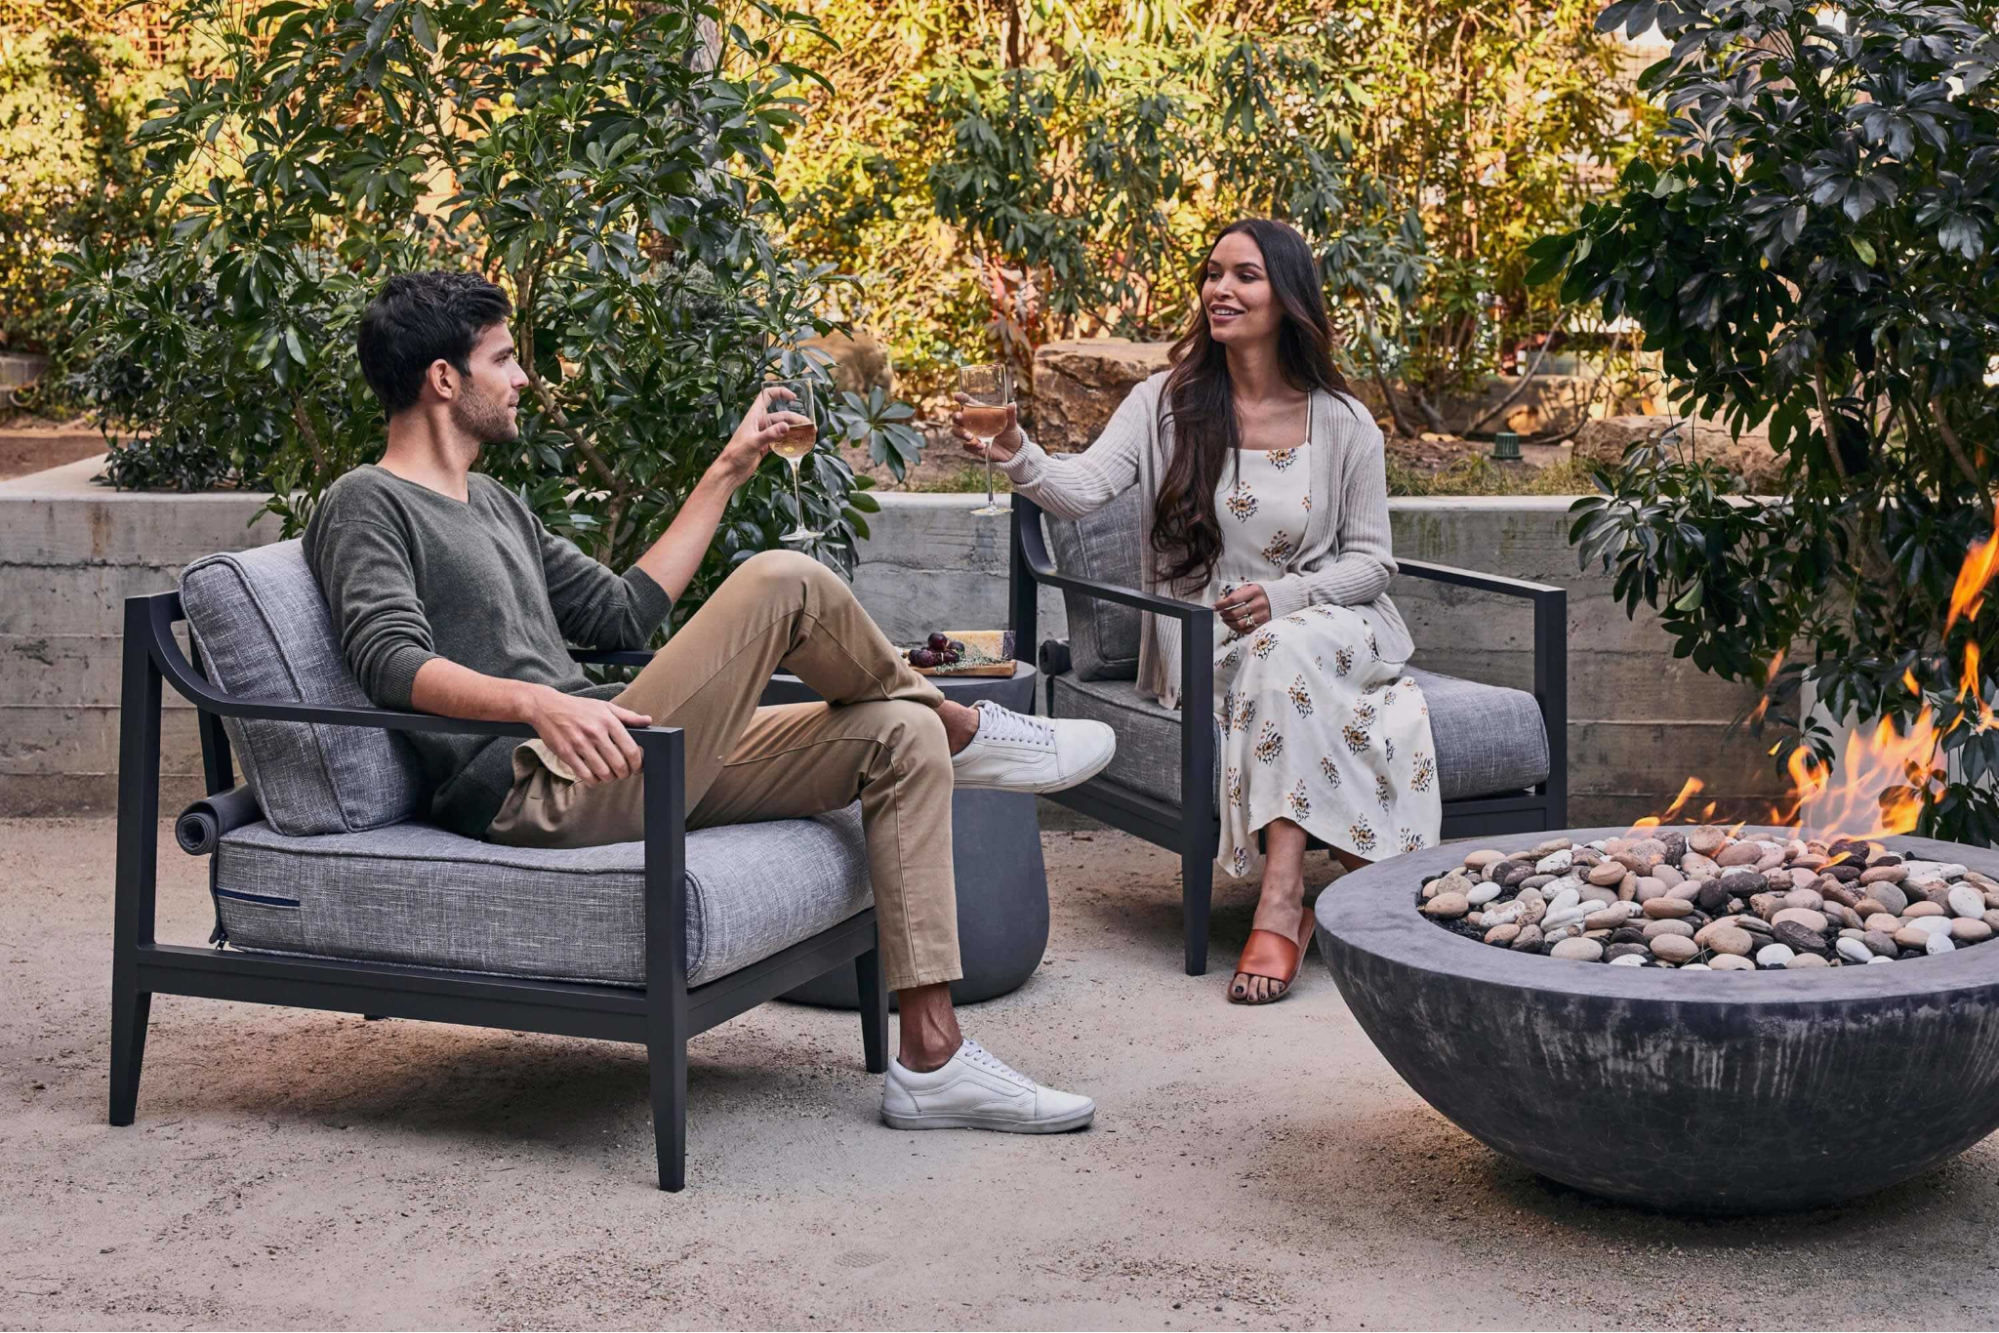 Patio Chairs Buying Guide: What To Look For When You Shop